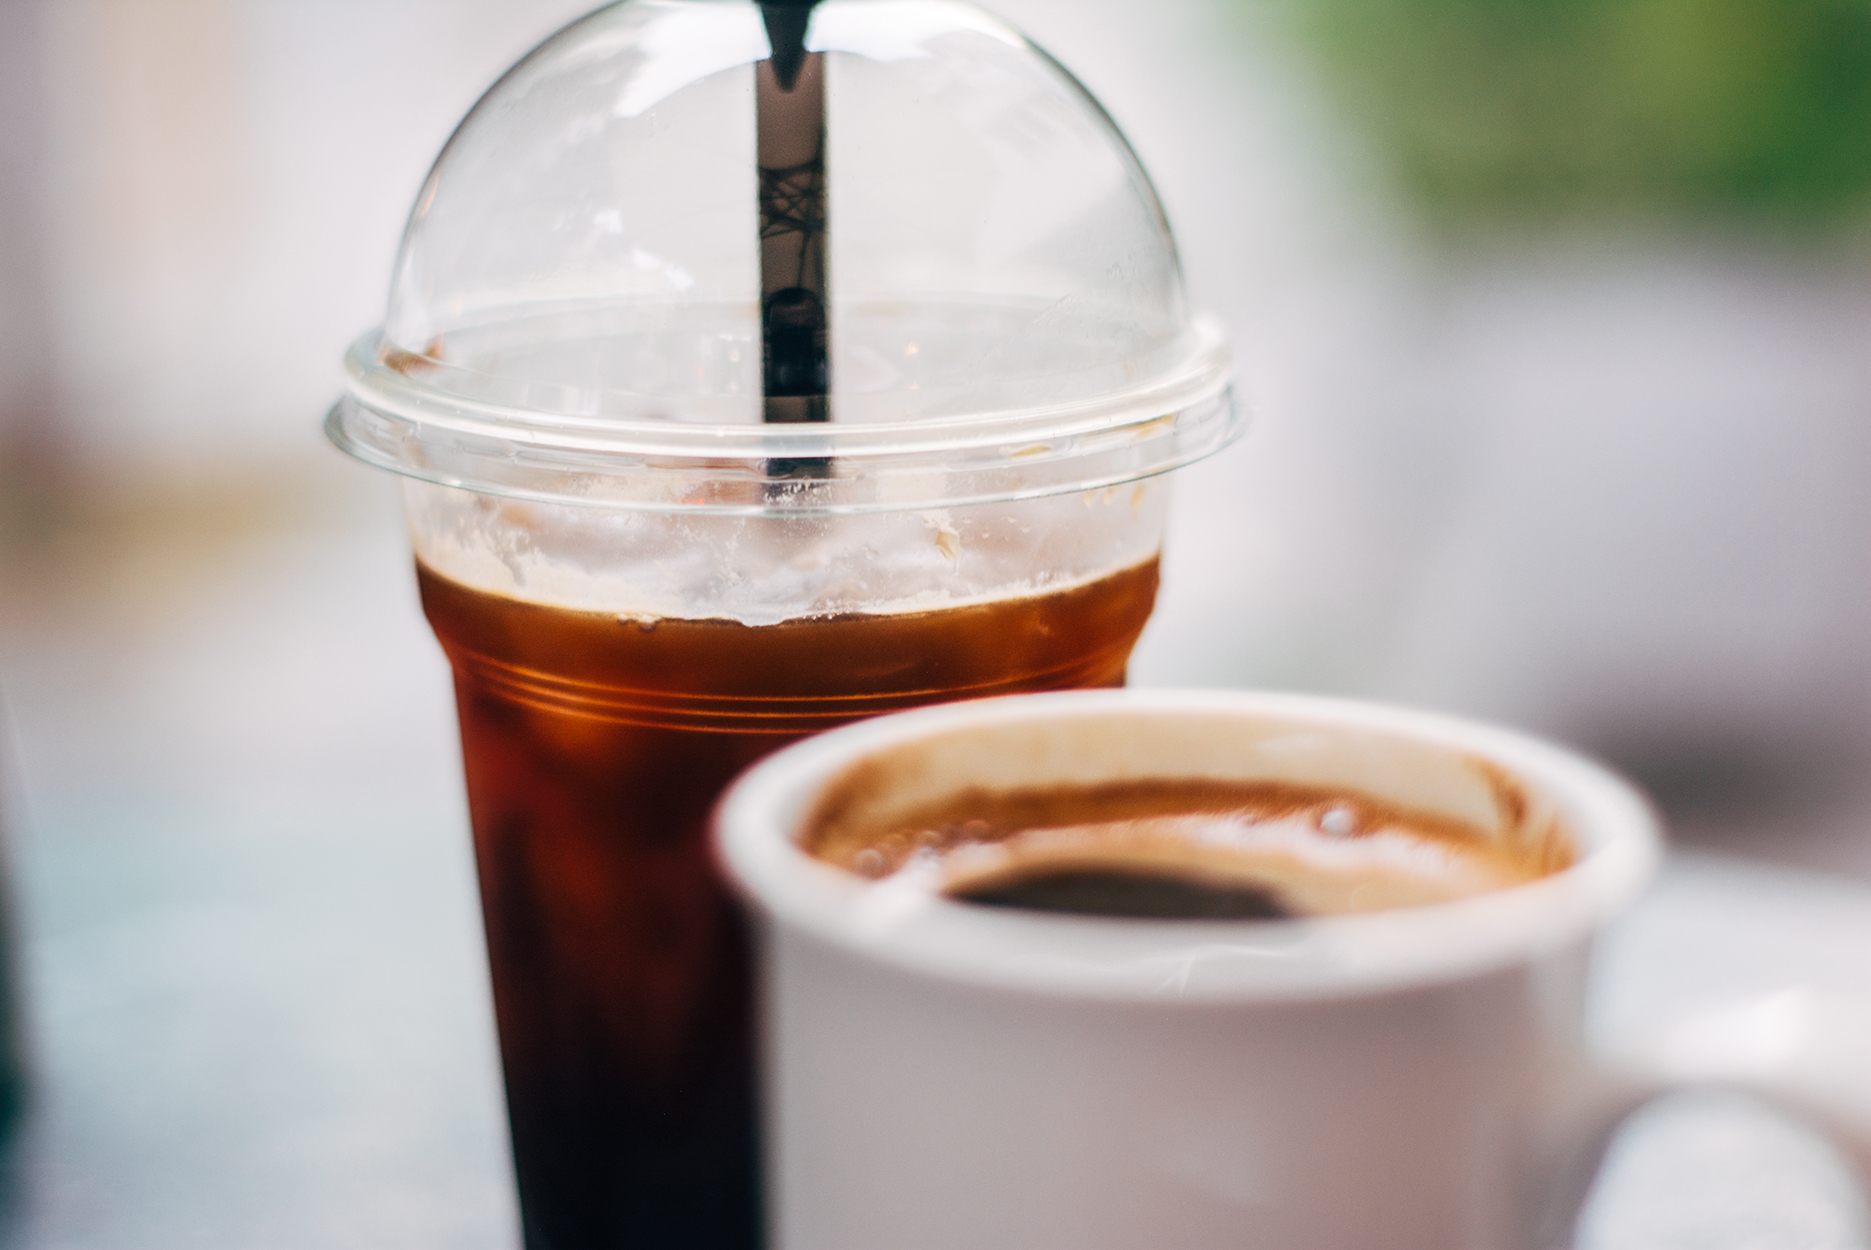 Hot and Cold Brew Coffee Are Chemically Different, Study Says